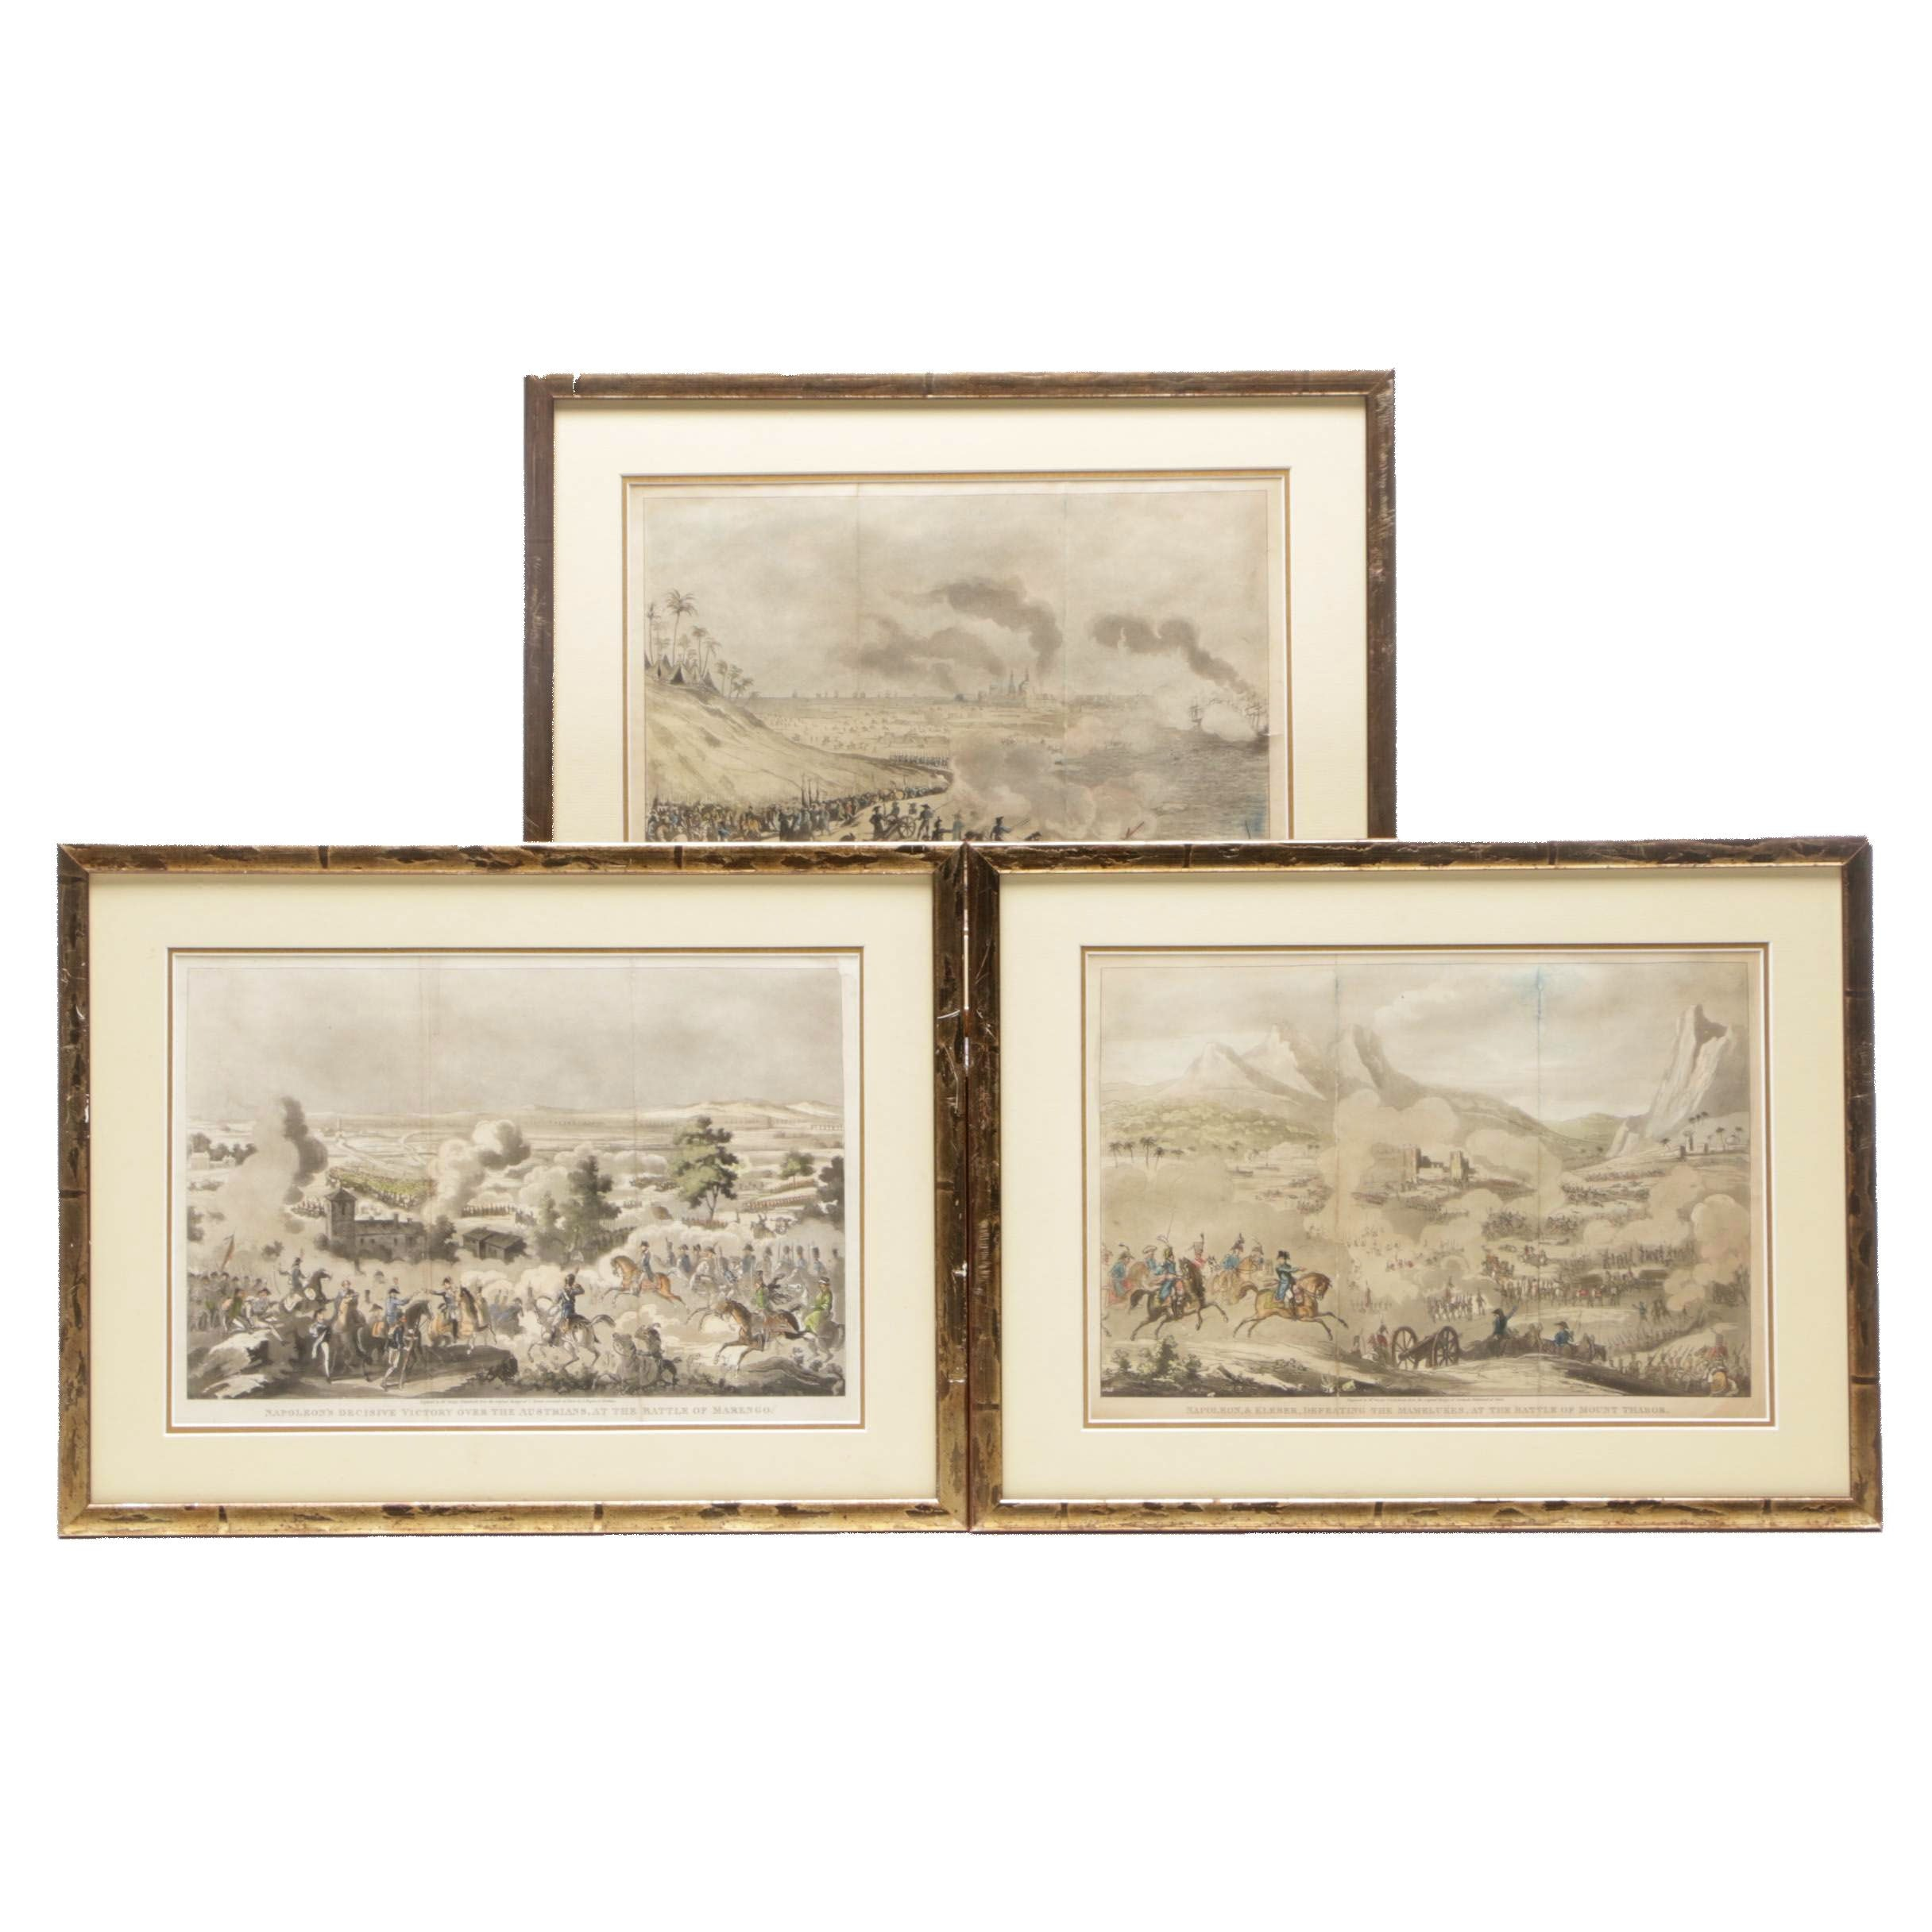 George Cruikshank Hand-colored Etchings with Aquatint of Napoleon Battle Scenes